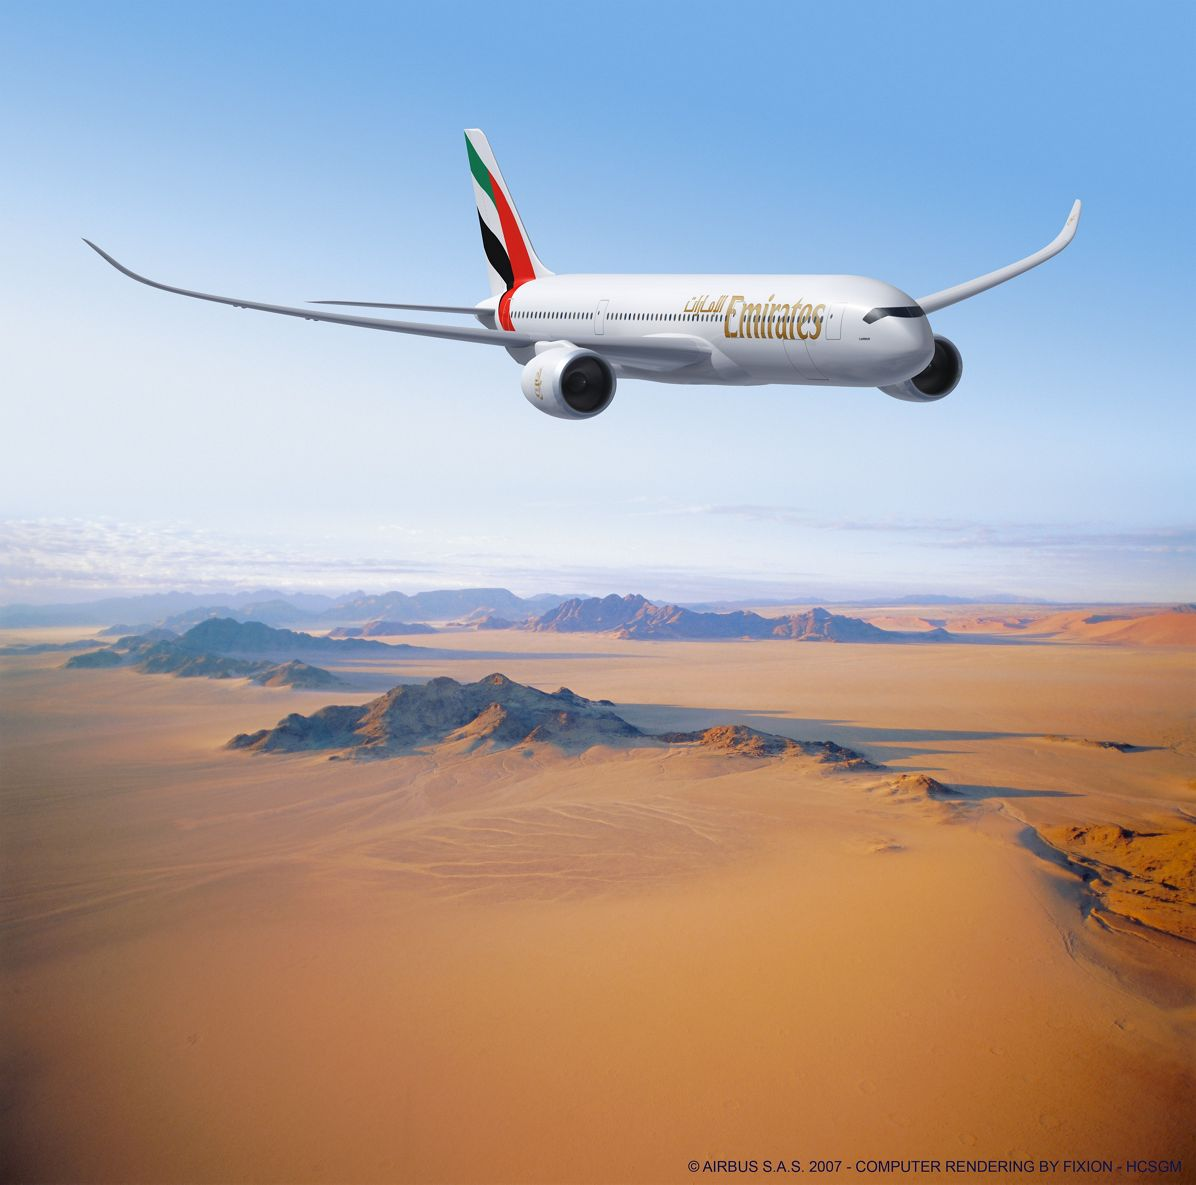 Emirates Airline buys 65 Airbus A350s and 11 additional A380s